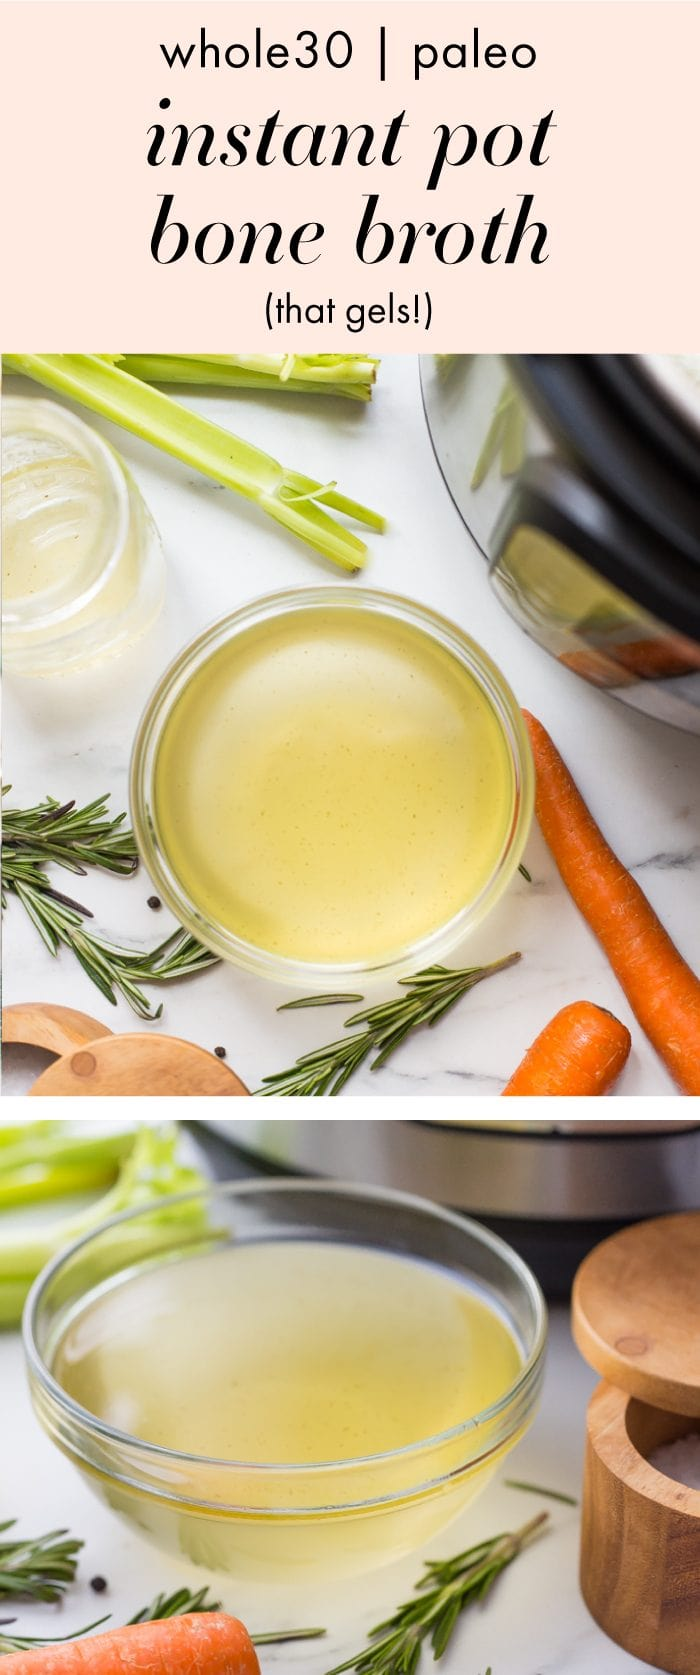 This Instant Pot bone broth is thebest Whole30 bone broth. It's so easy to make and turns out deliciously rich and nourishing, plus it gels like a straight up Jell-O jiggler! Once you've tried this Instant Pot bone broth, you'll have a batch of this Whole30 bone broth in the fridge at all times. We certainly do!